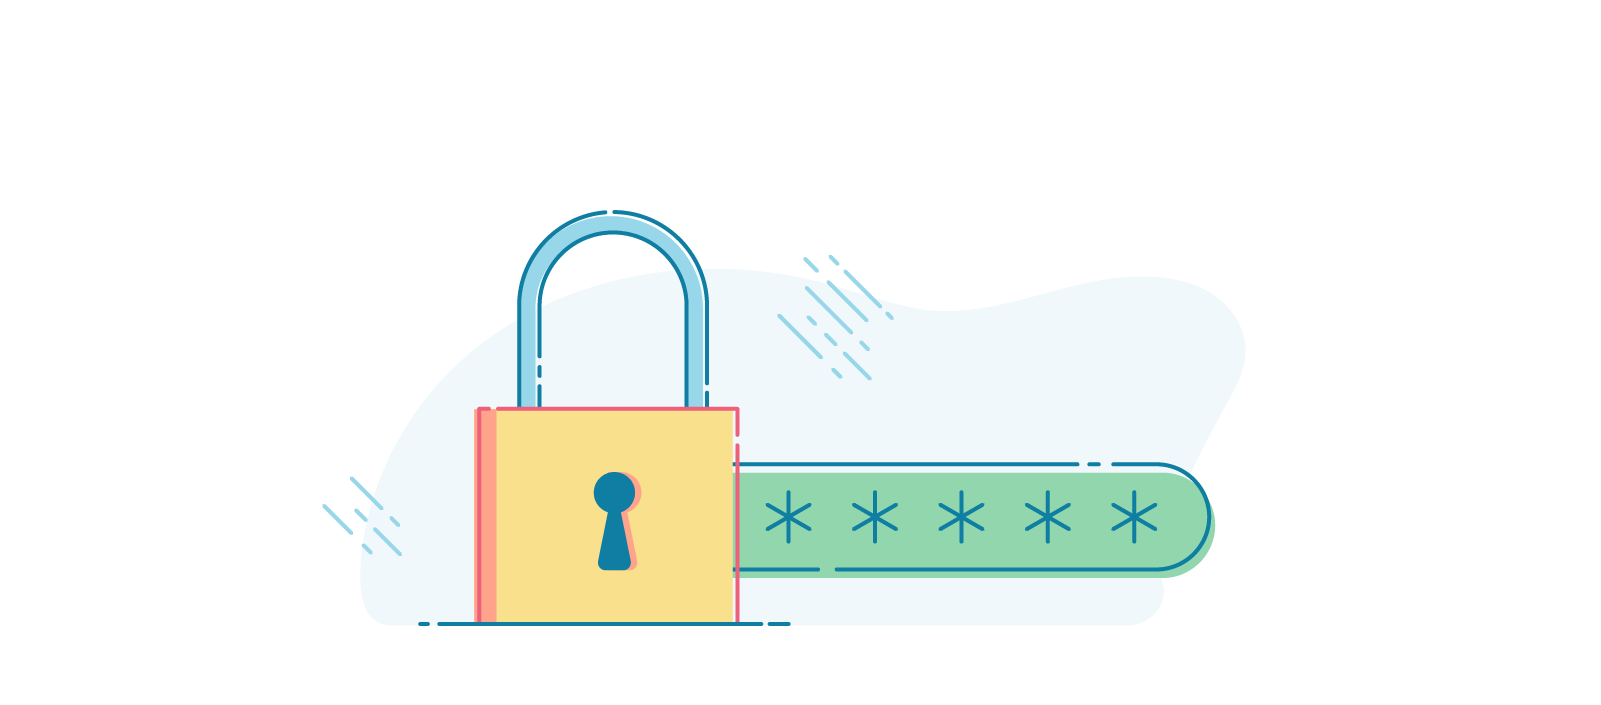 Illustration of a padlock in-front of a password input.